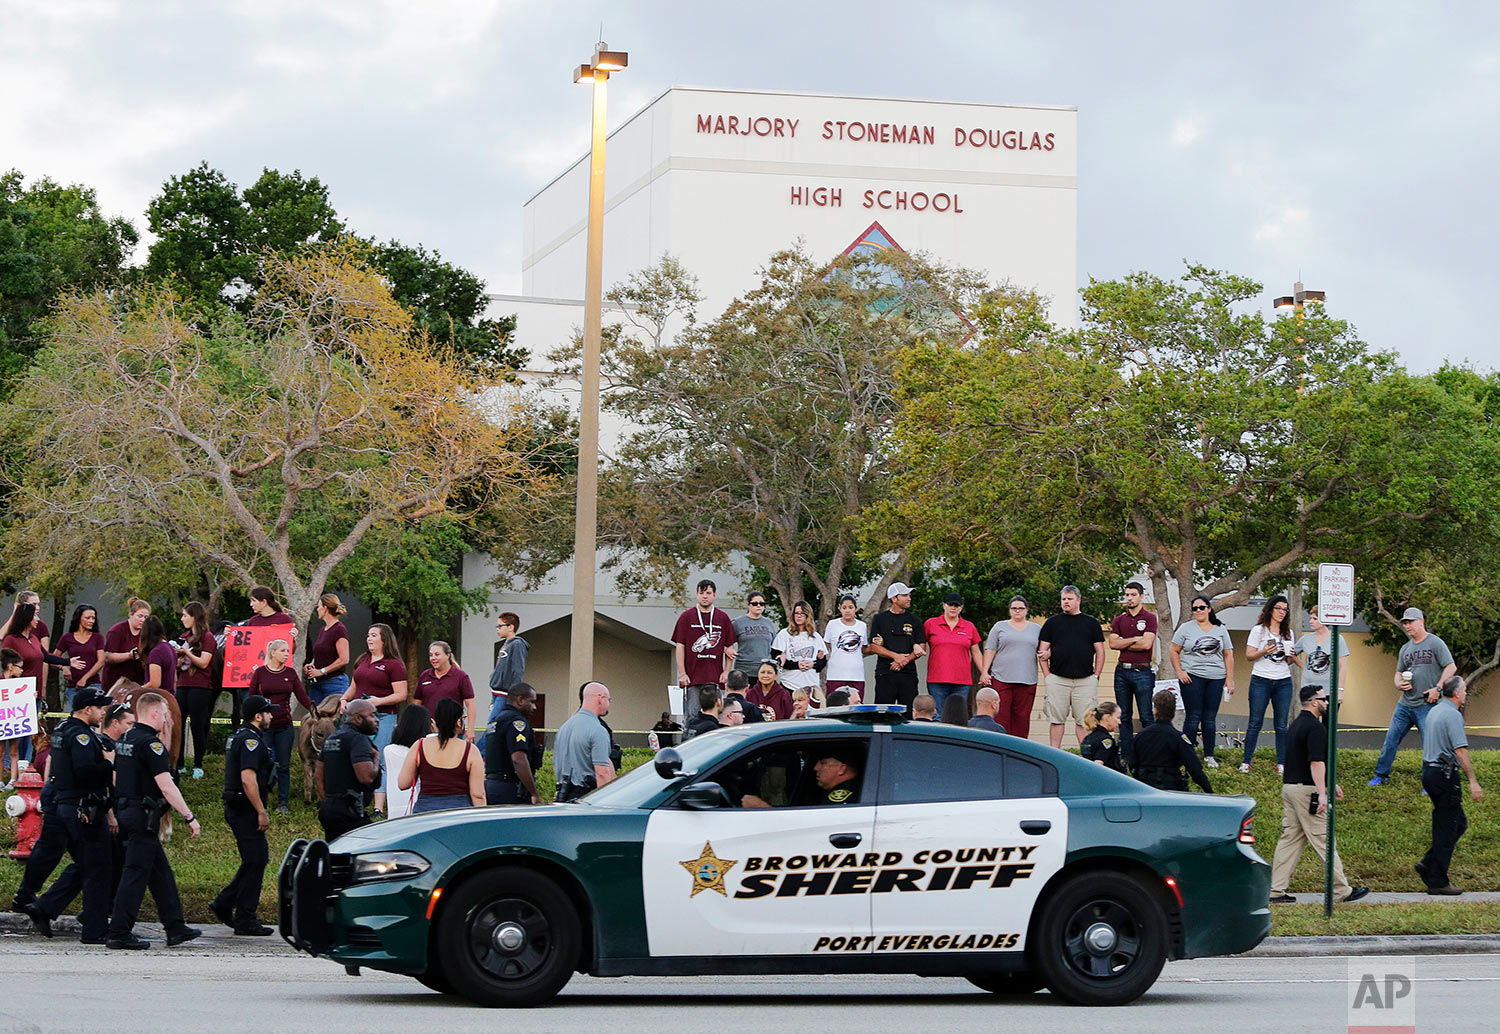 A heavy law enforcement presence greeted Marjory Stoneman Douglas High School students on their first day back to class in Parkland, Fla., on Feb. 28, 2018. (AP Photo/Terry Renna)